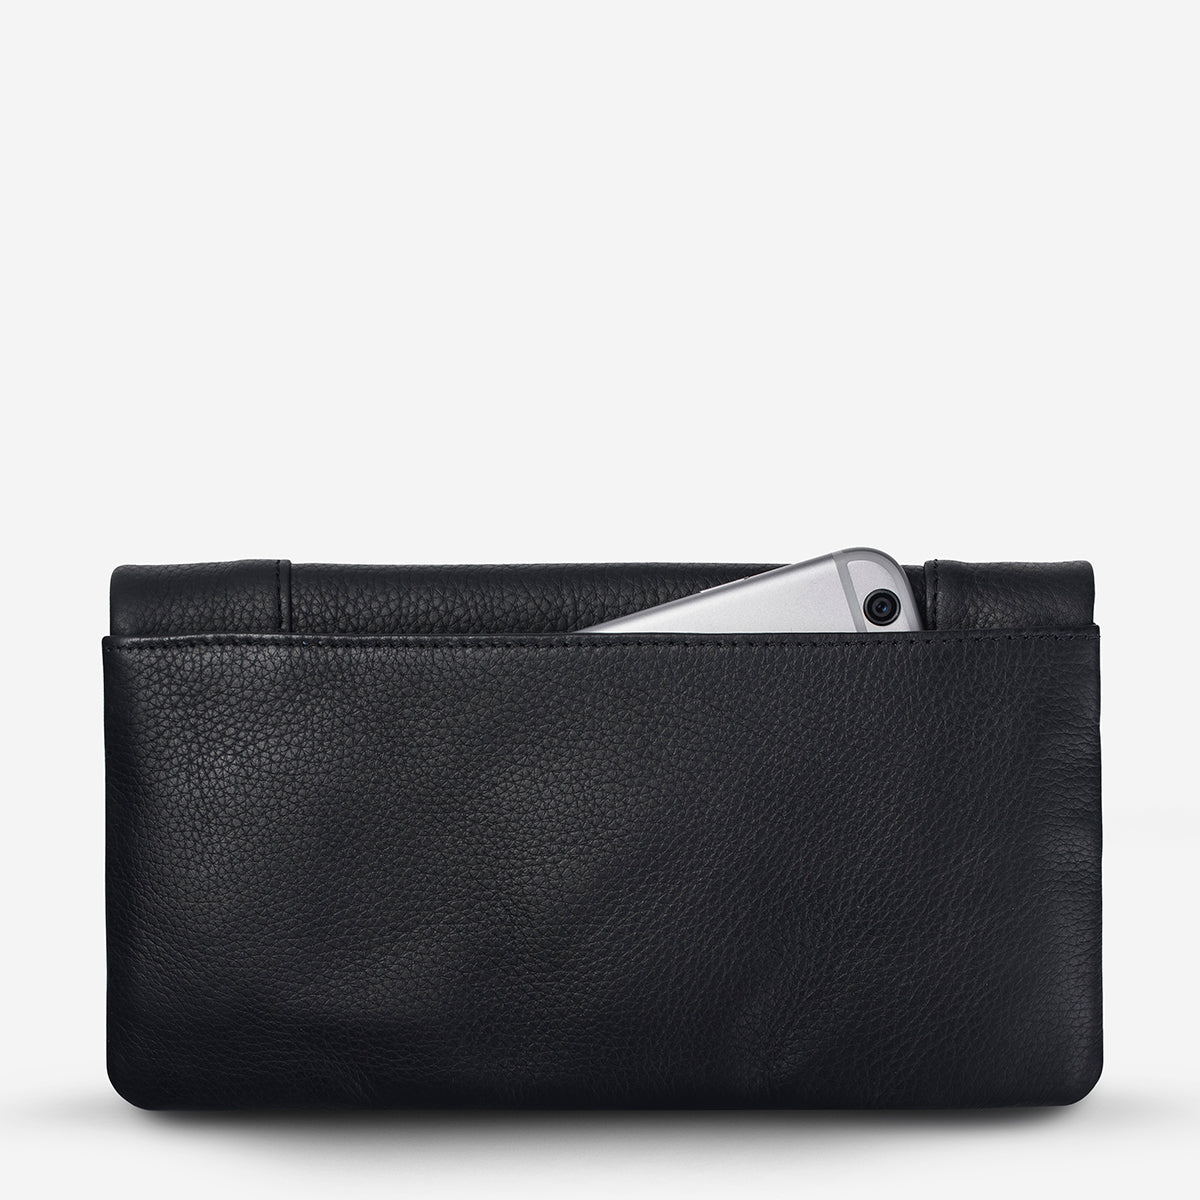 Status Anxiety Some Type Of Love Women's Leather Wallet - Black